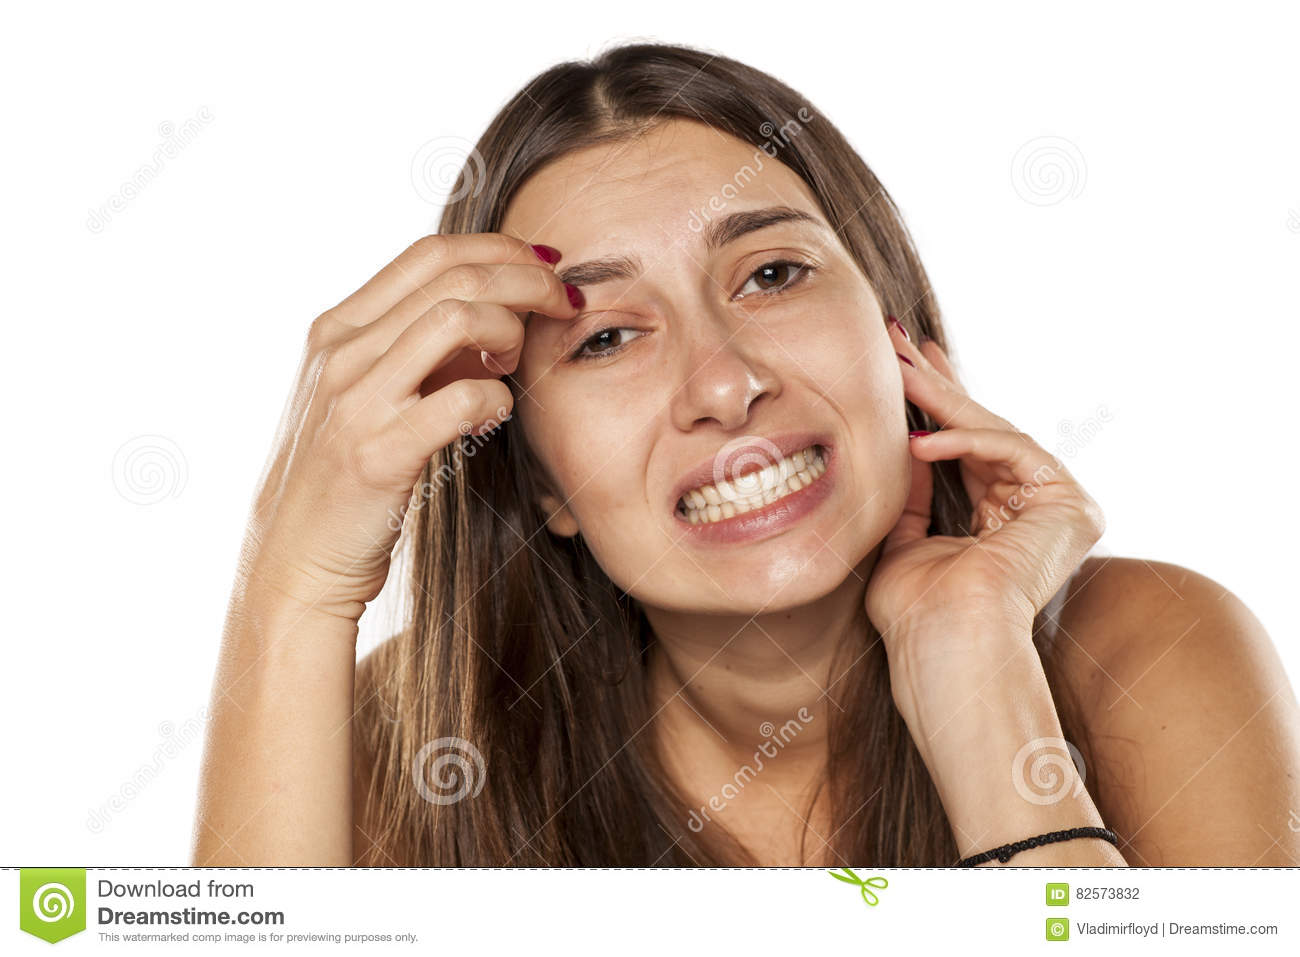 Itchy Eyebrows Stock Photo Image Of Attractive Eyebrow 82573832